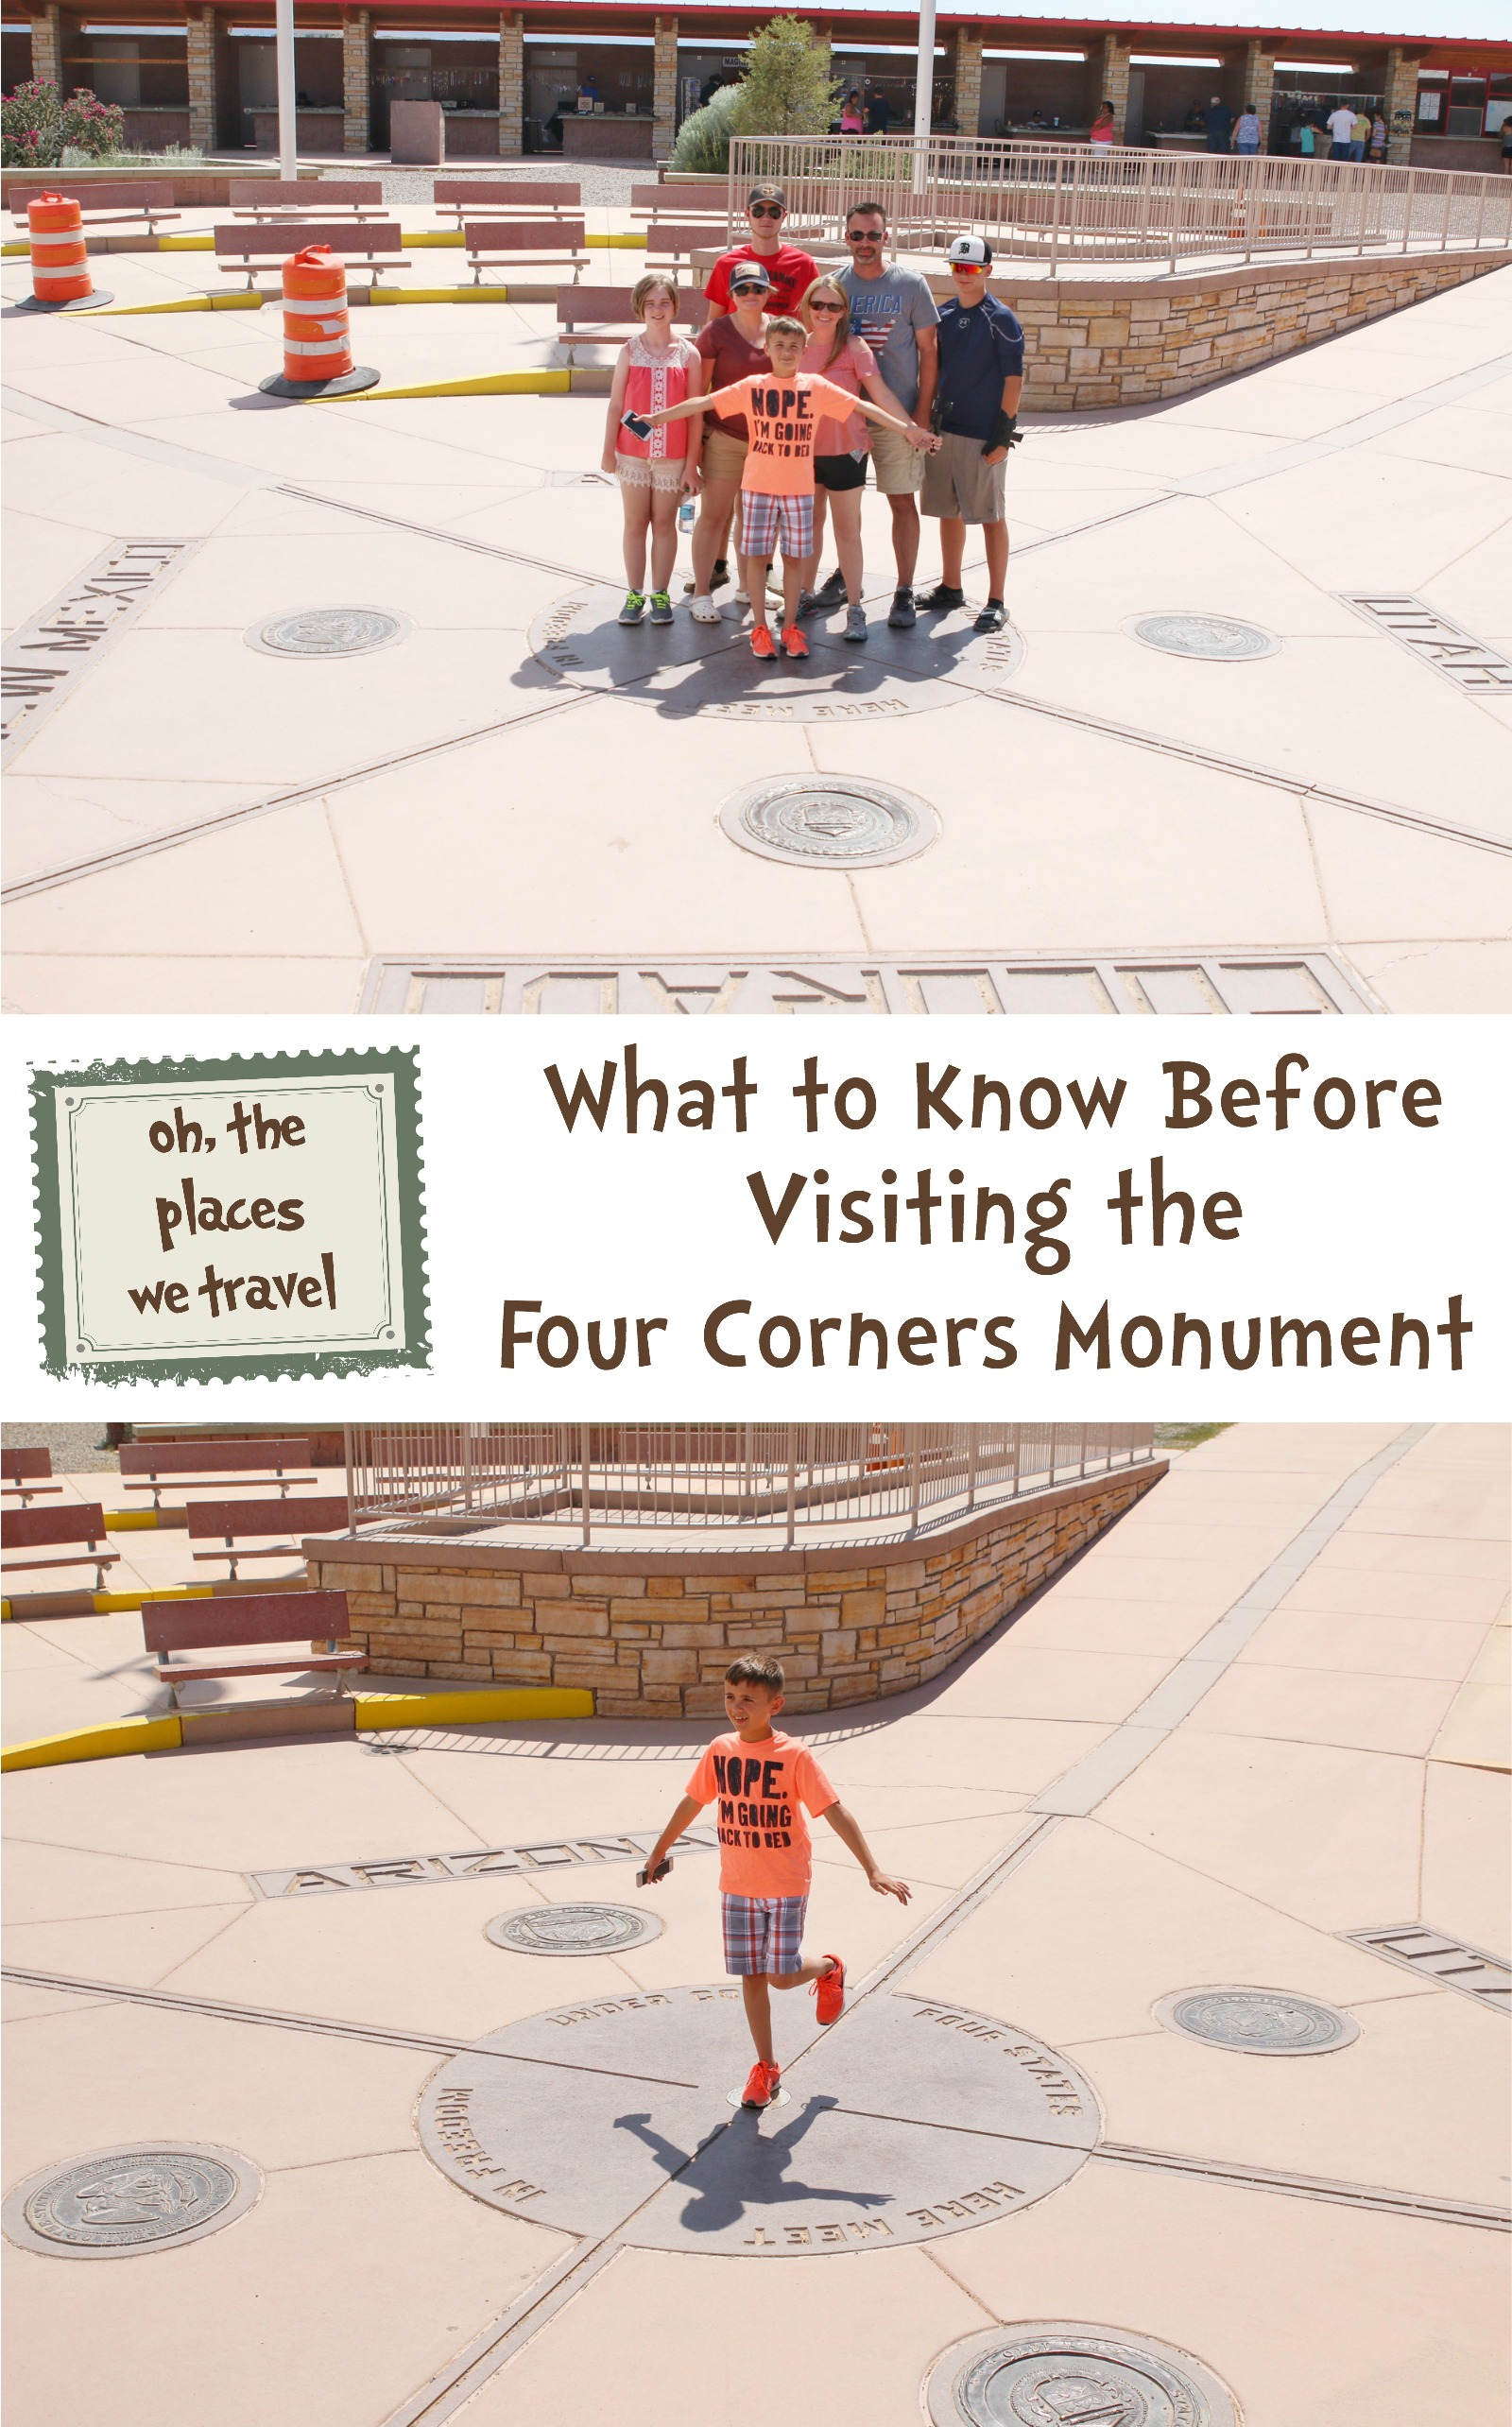 What to Know Before Visiting the Four Corners Monument